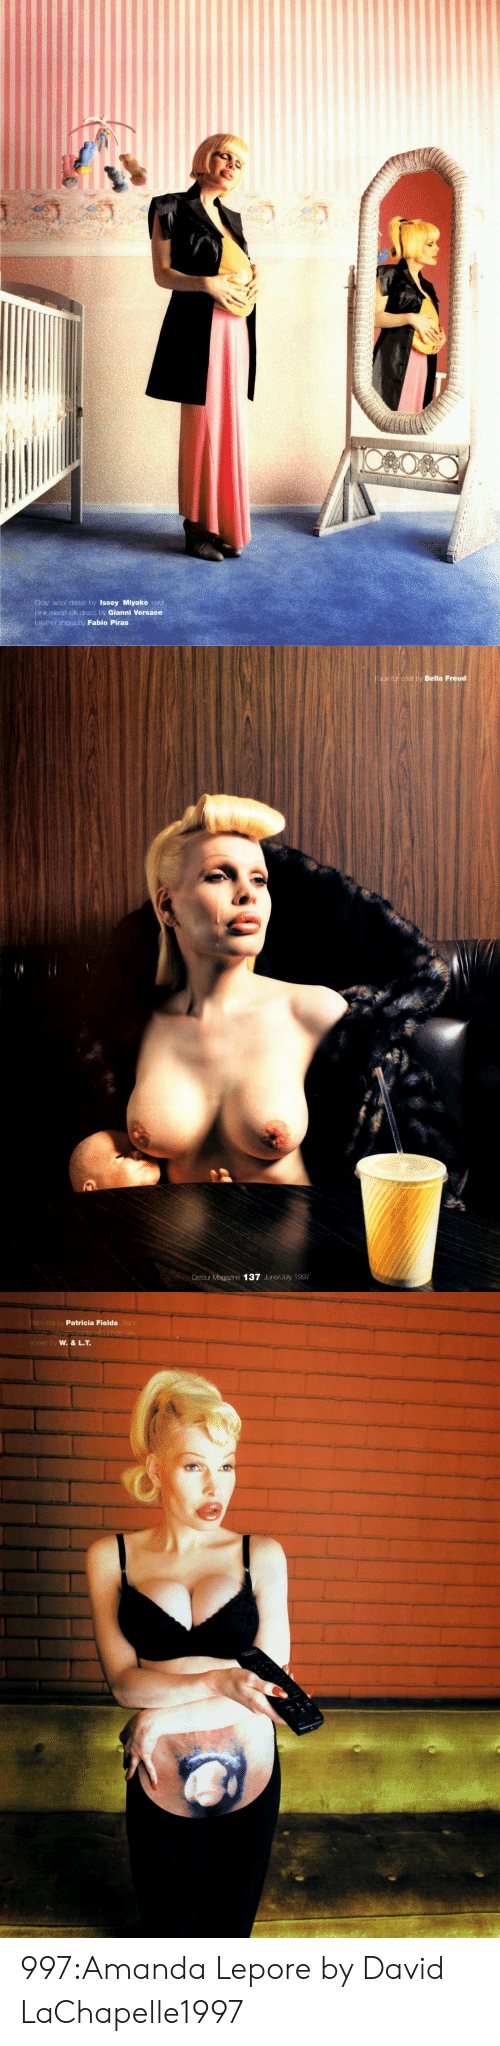 Versace: Gray wool dress by Issey Miyake over  pink mixed-sik dress by Gianni Versace  eather shoes by Fabio Piras   Faux-fur coat by Bella Freud  Detour Magazine 137 June/July 1997   a by  Patricia Fields  by 997:Amanda Lepore by David LaChapelle1997